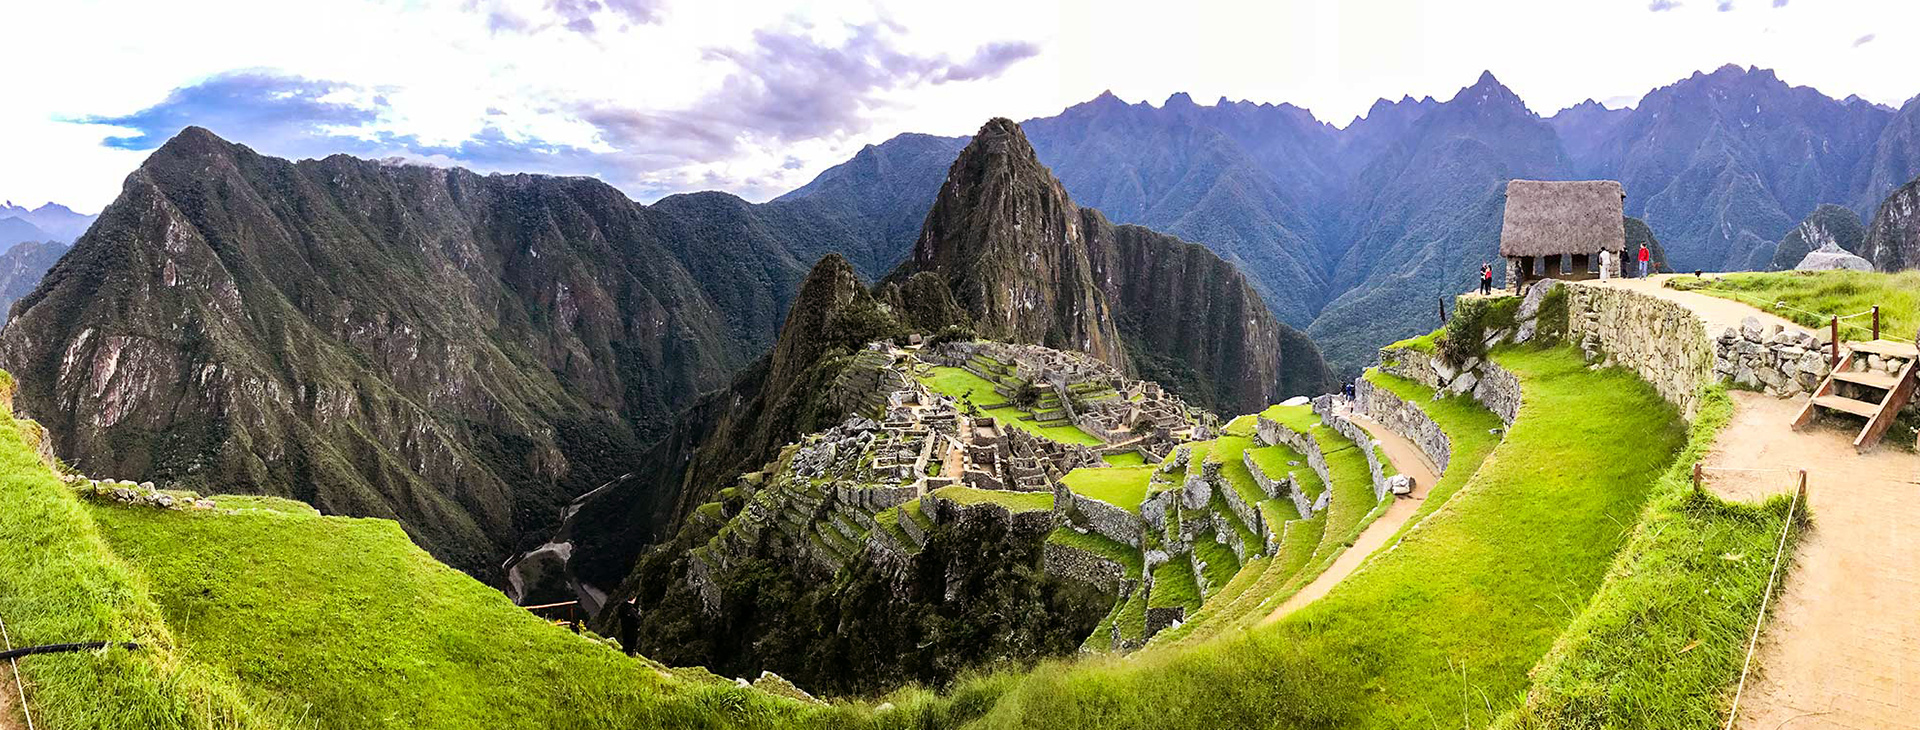 machu picchu tours peru travel cusco panoramico tour